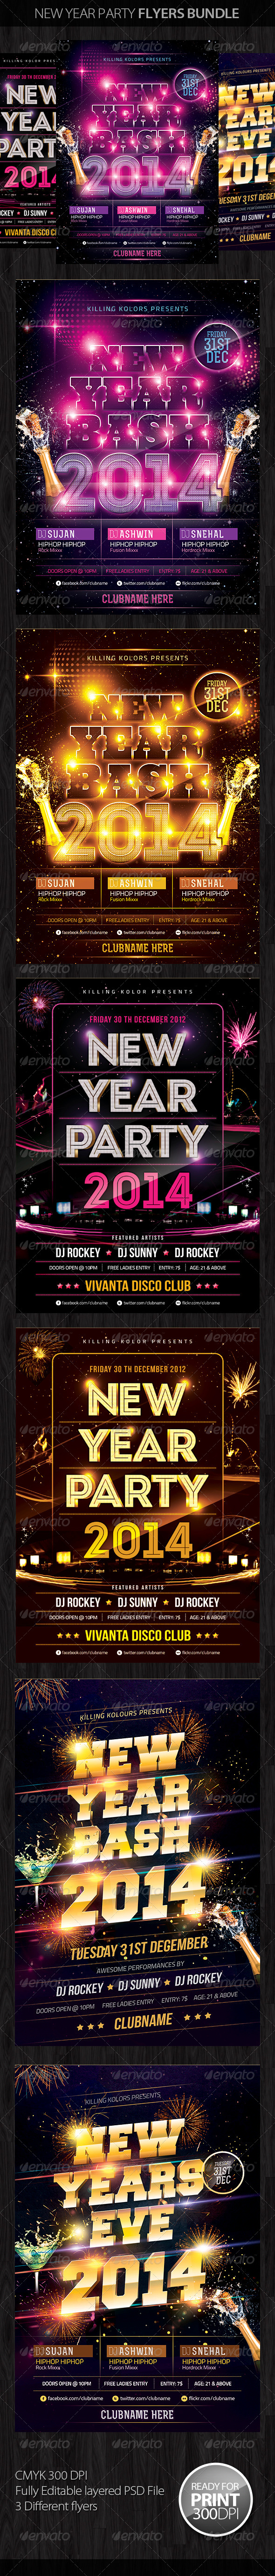 GraphicRiver New Year Party Flyer Bundle 6280221